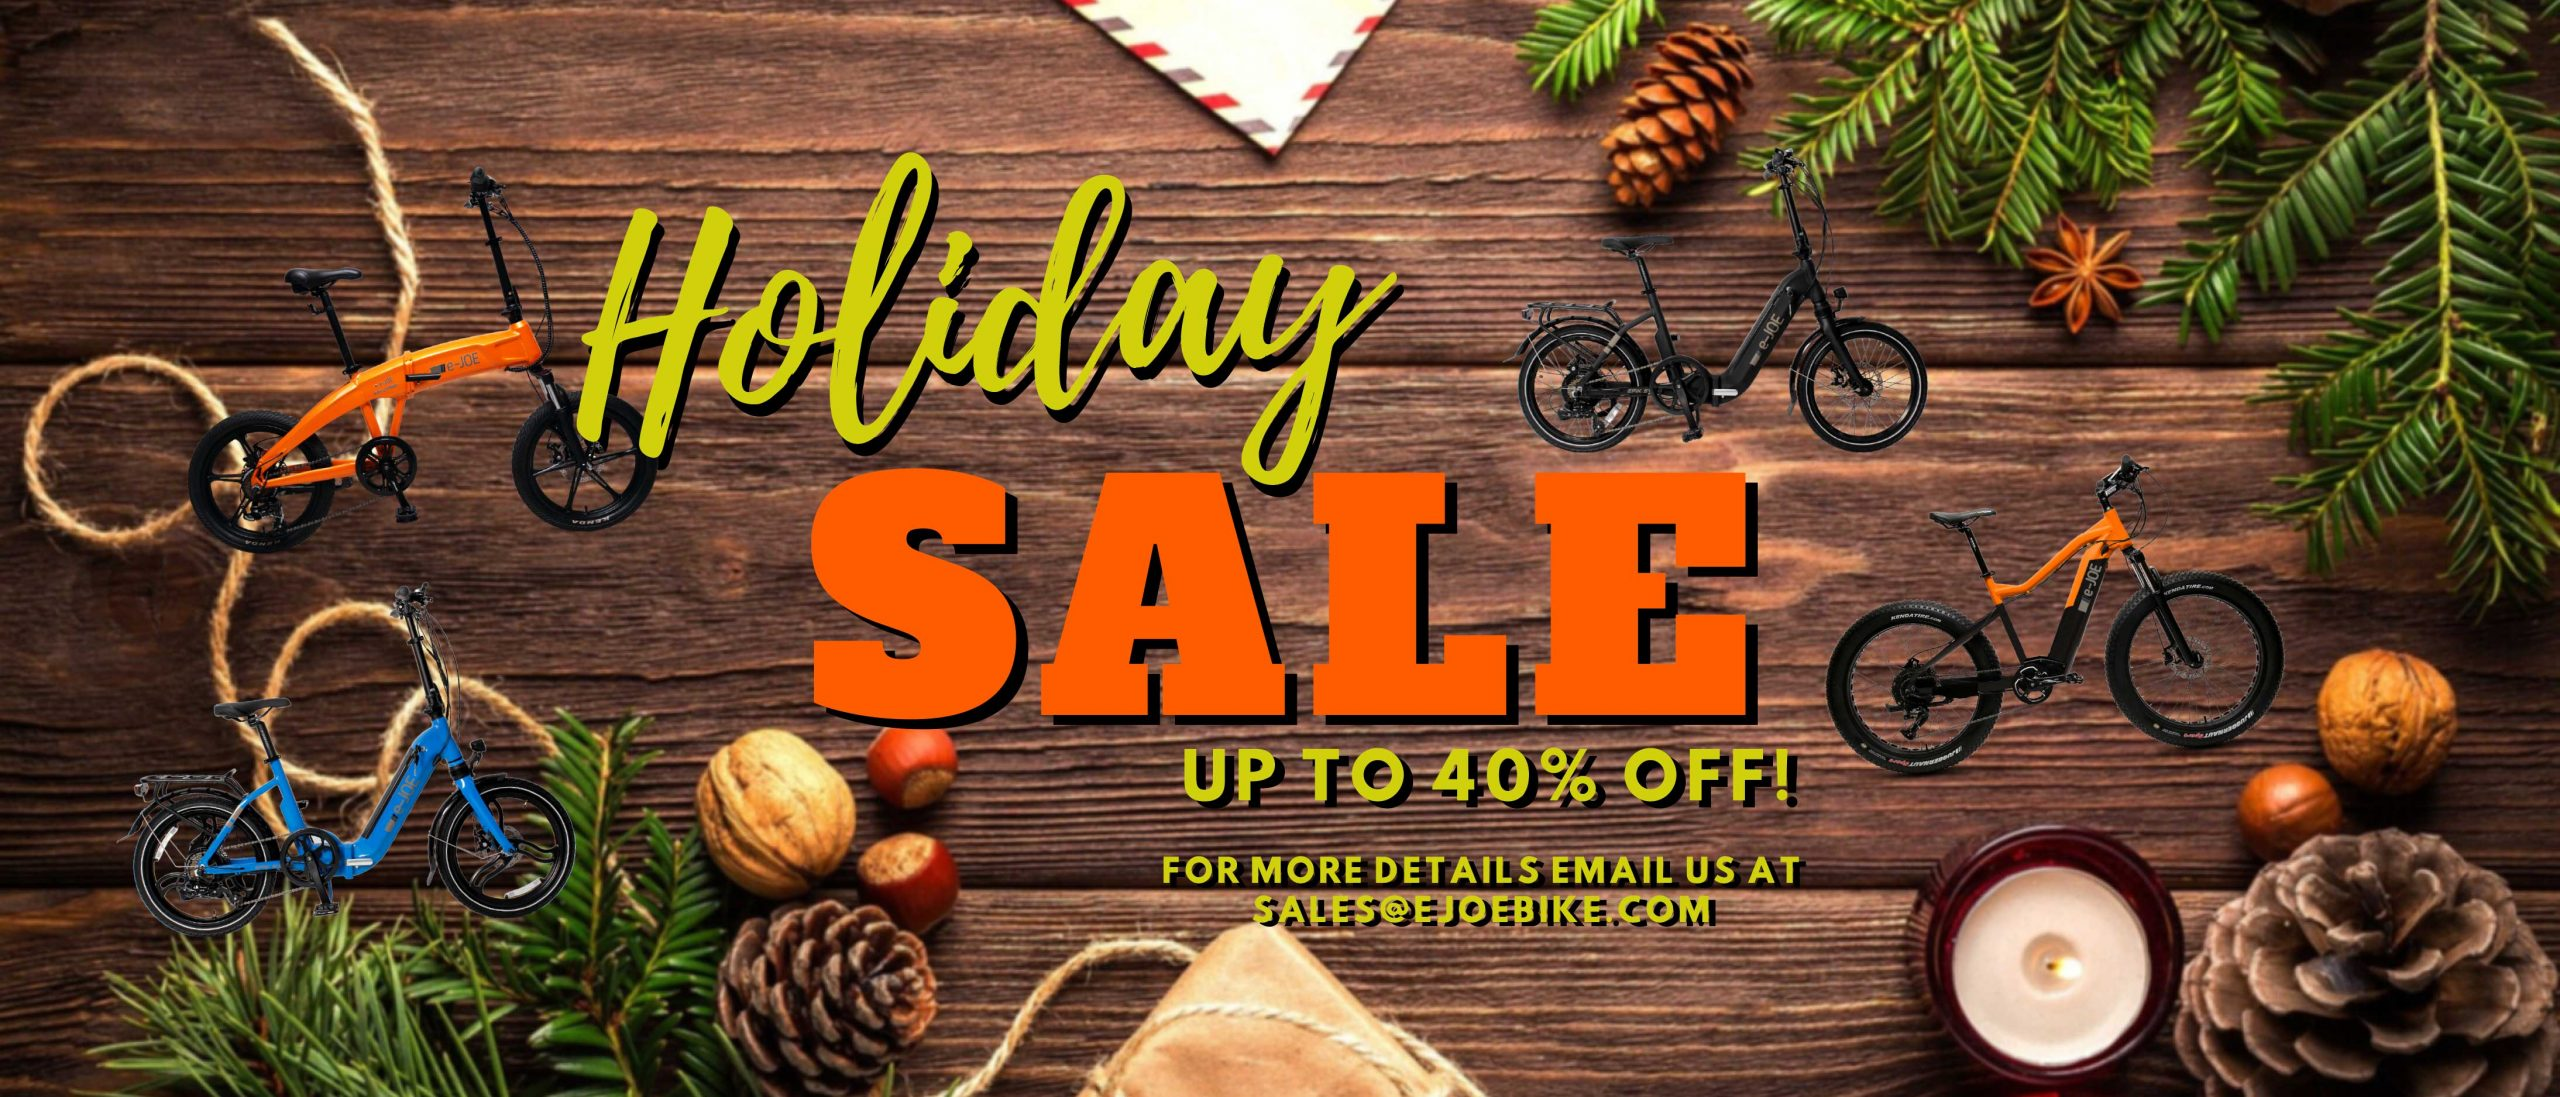 NOW is the perfect time to get ready for fun summer cycling! Holiday Sale Season is ON! Email us at sales@ejoebike.com to find out about the latest deals and discounts!